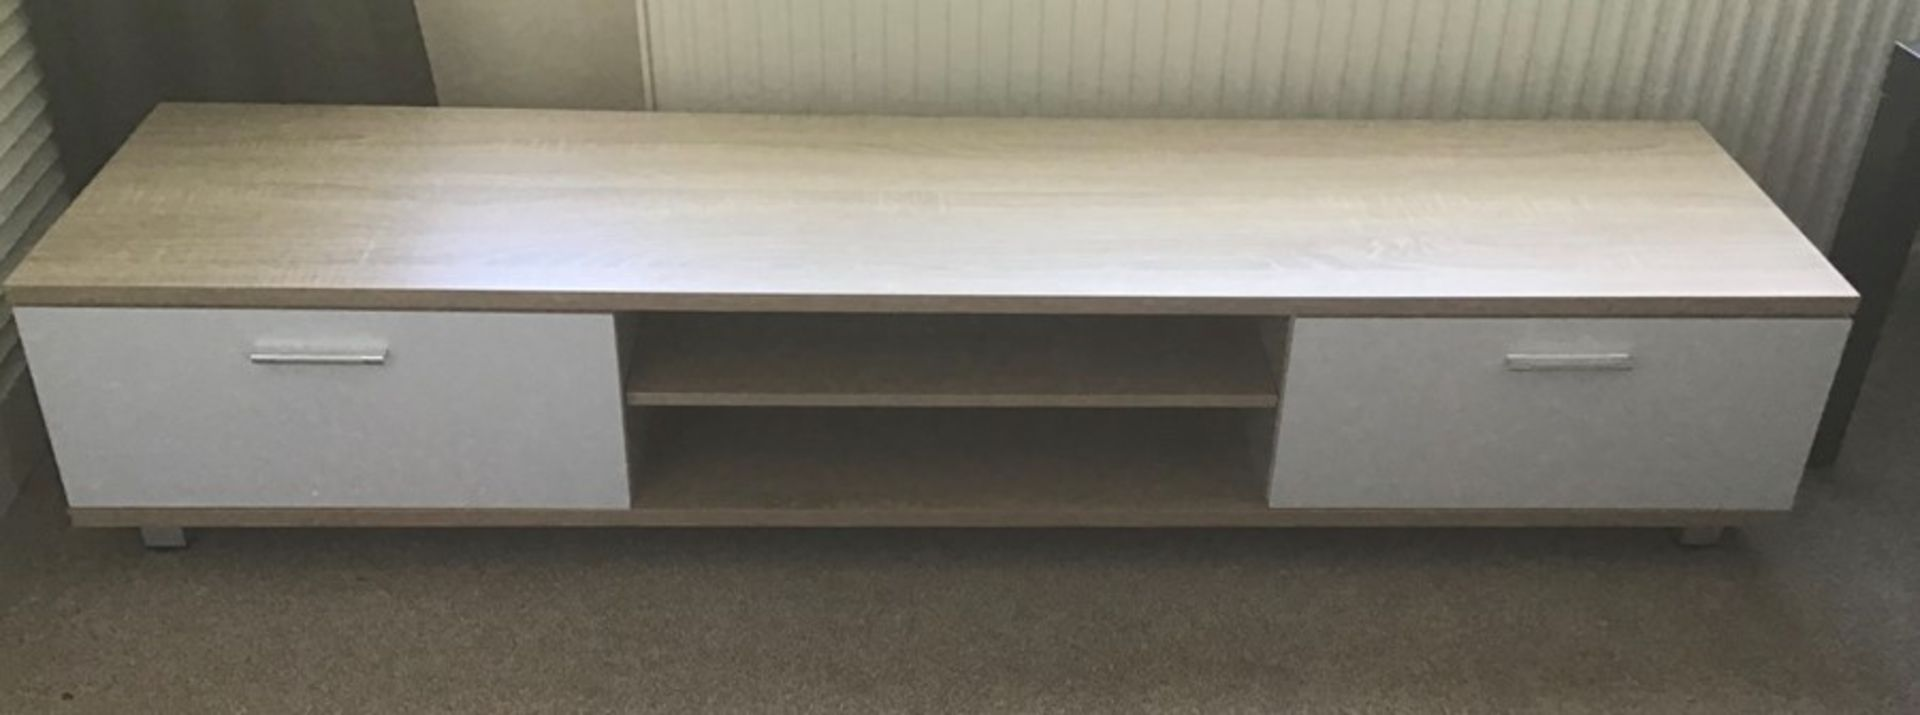 Oak and white 128cm TV stand, brand new, flat packed and boxed. RRP Circa £100.00 | 3x Boxes